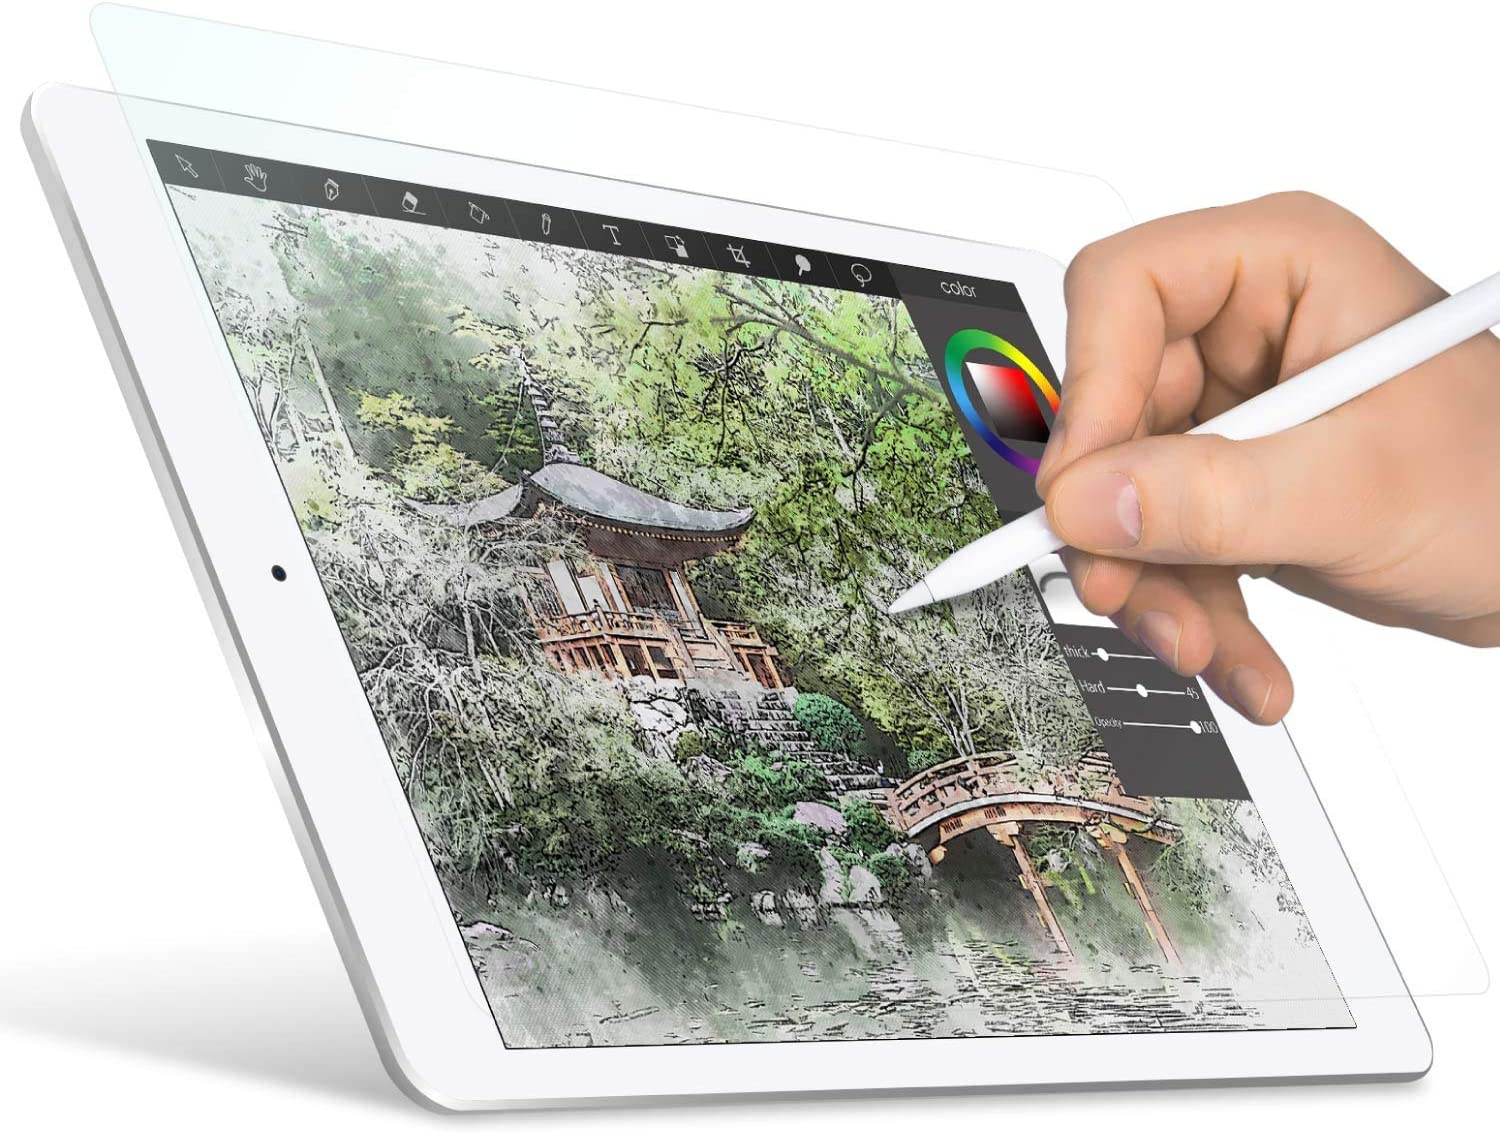 """ELECOM Paper-Feel Screen Protector Designed for Drawing, Anti-Glare Scratch-Resistant Bubble-Free, Compatible with 7.9"""" iPad Mini 2019 (TB-A19SFLAPLL)"""